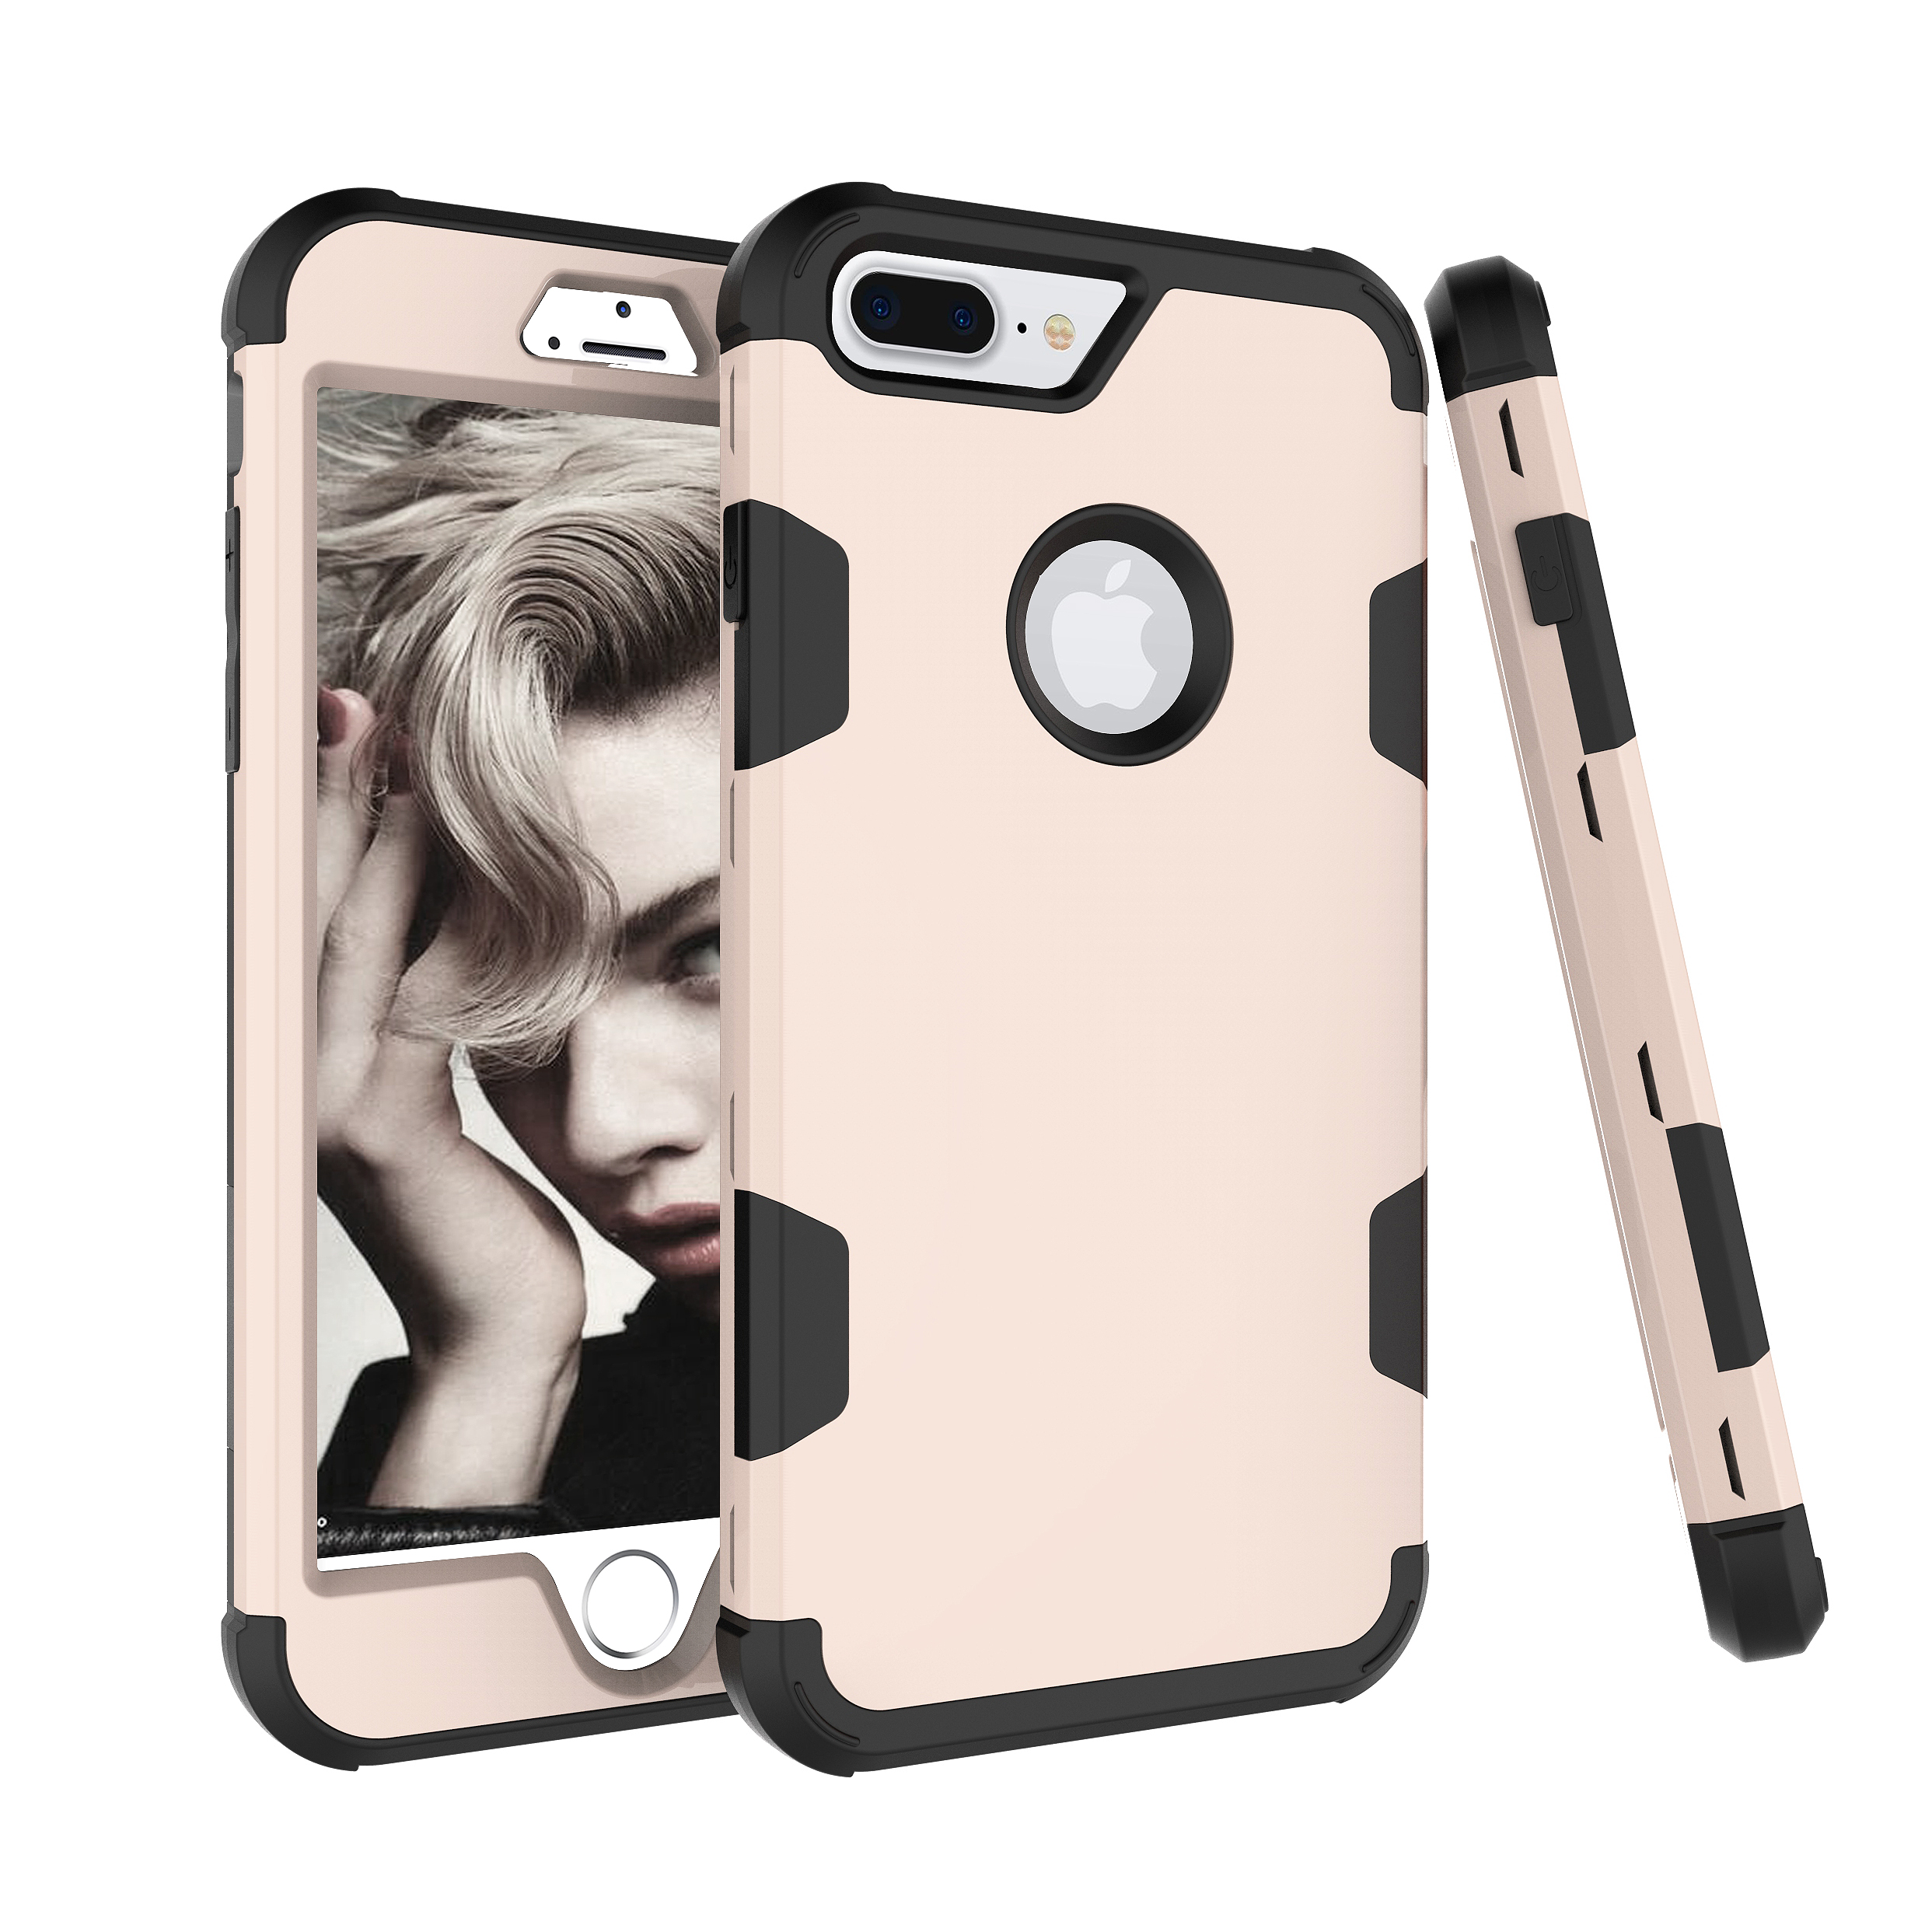 For iPhone 7 plus PC+ Silicone 2 in 1 Hit Color Tri-proof Shockproof Dustproof Anti-fall Protective Cover Back Case Gold + black